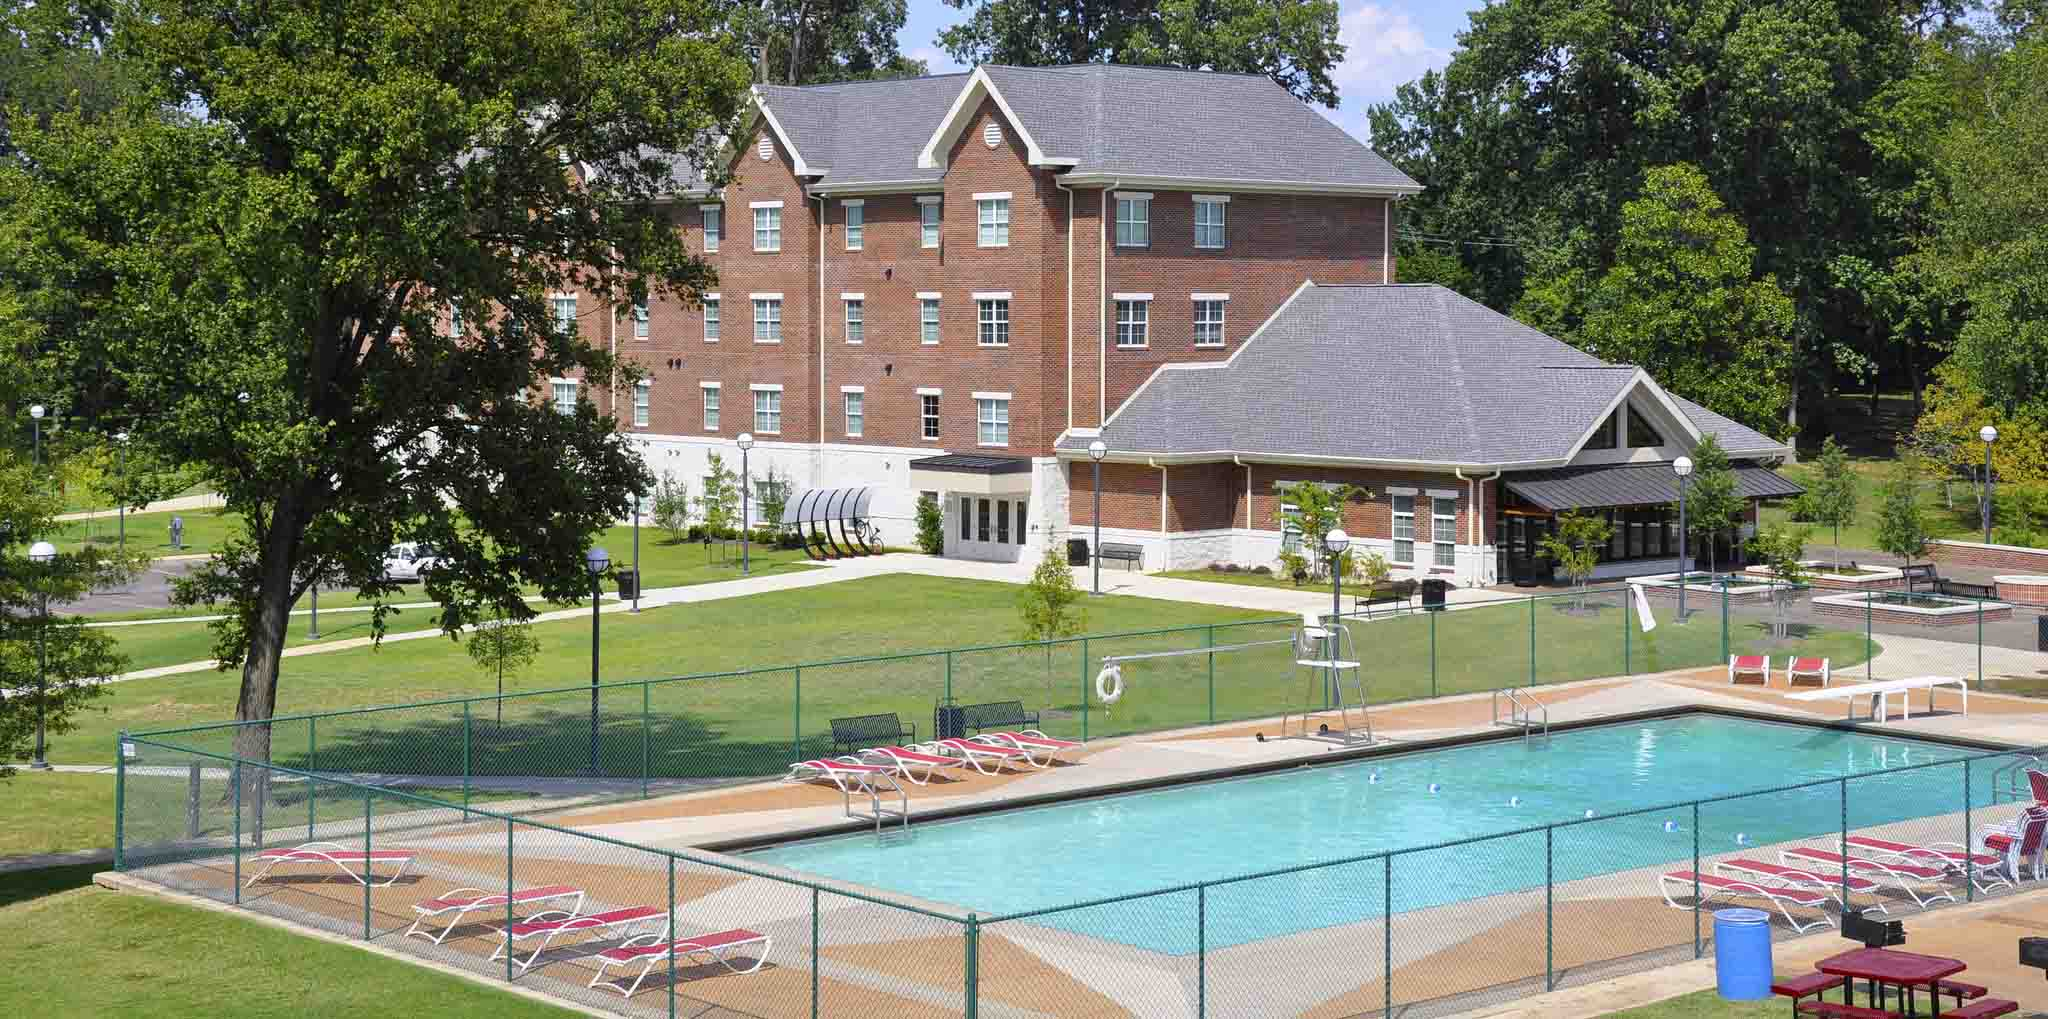 Canale Pool at CBU